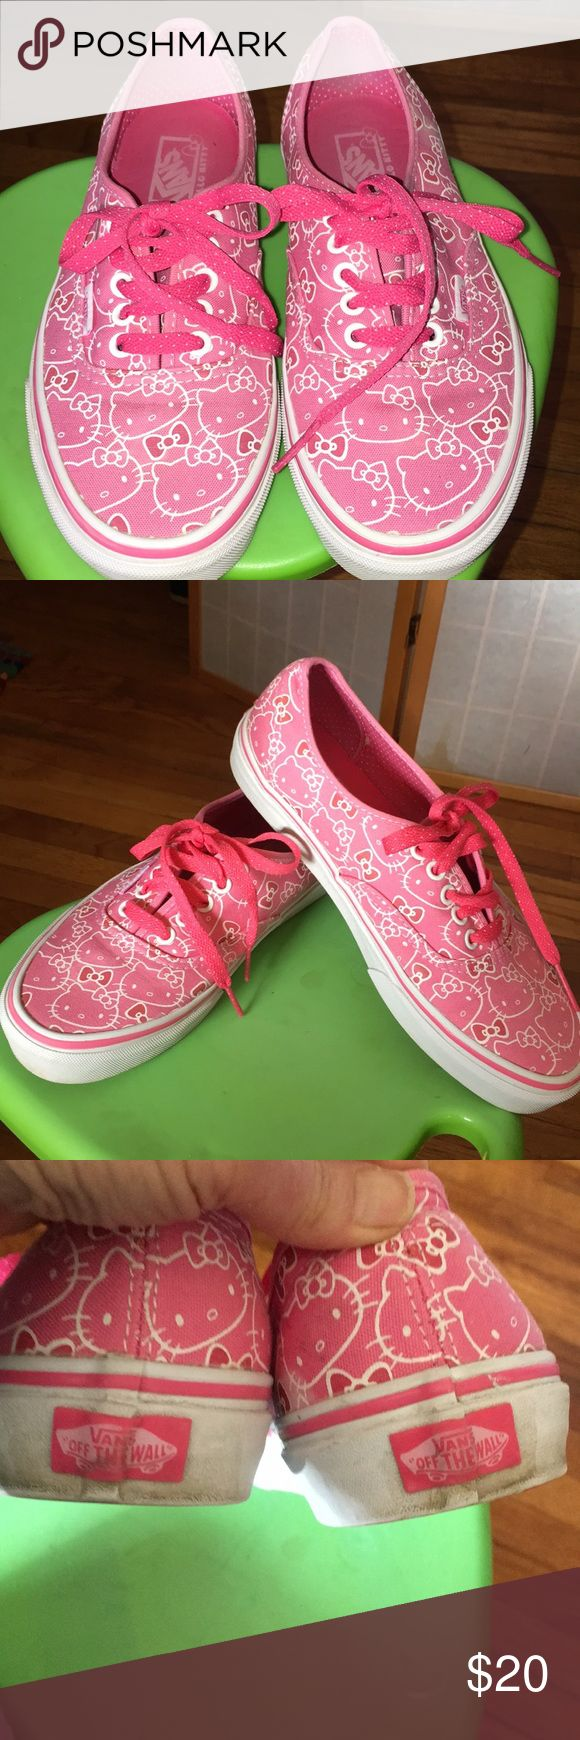 Hello Kitty Vans Here are a pair of Hello Kitty off the wall Vans. Men's size 6.5 woman's size 8. Pink with small white dot laces. Slight discoloration on back heels near logo does not distract from shoes, but otherwise in EUC . Very clean and ready to go. Get you Hello Kitty's on!👟👟😎 Vans Shoes Sneakers